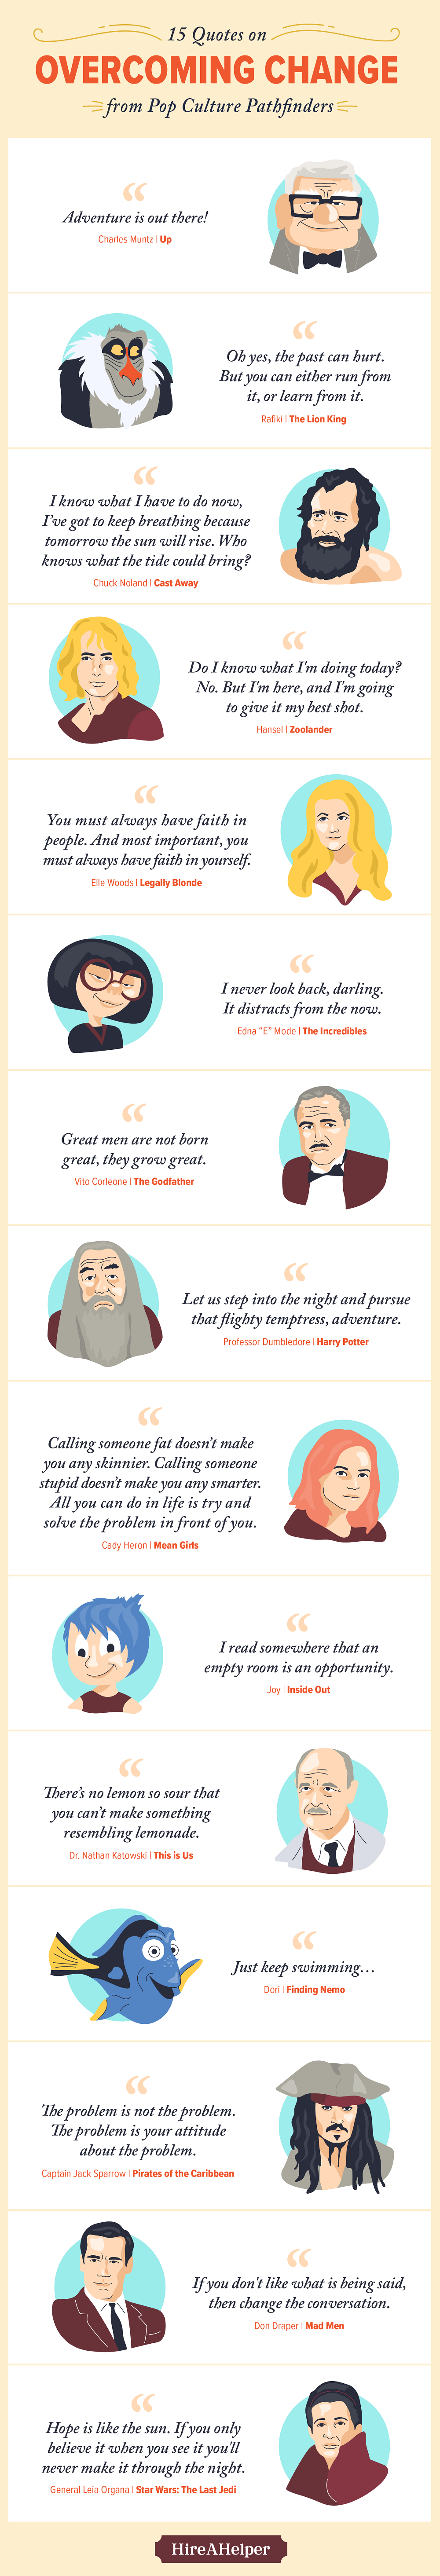 15 inspirational quotes for new graduates from pop culture pathfinders #infographic